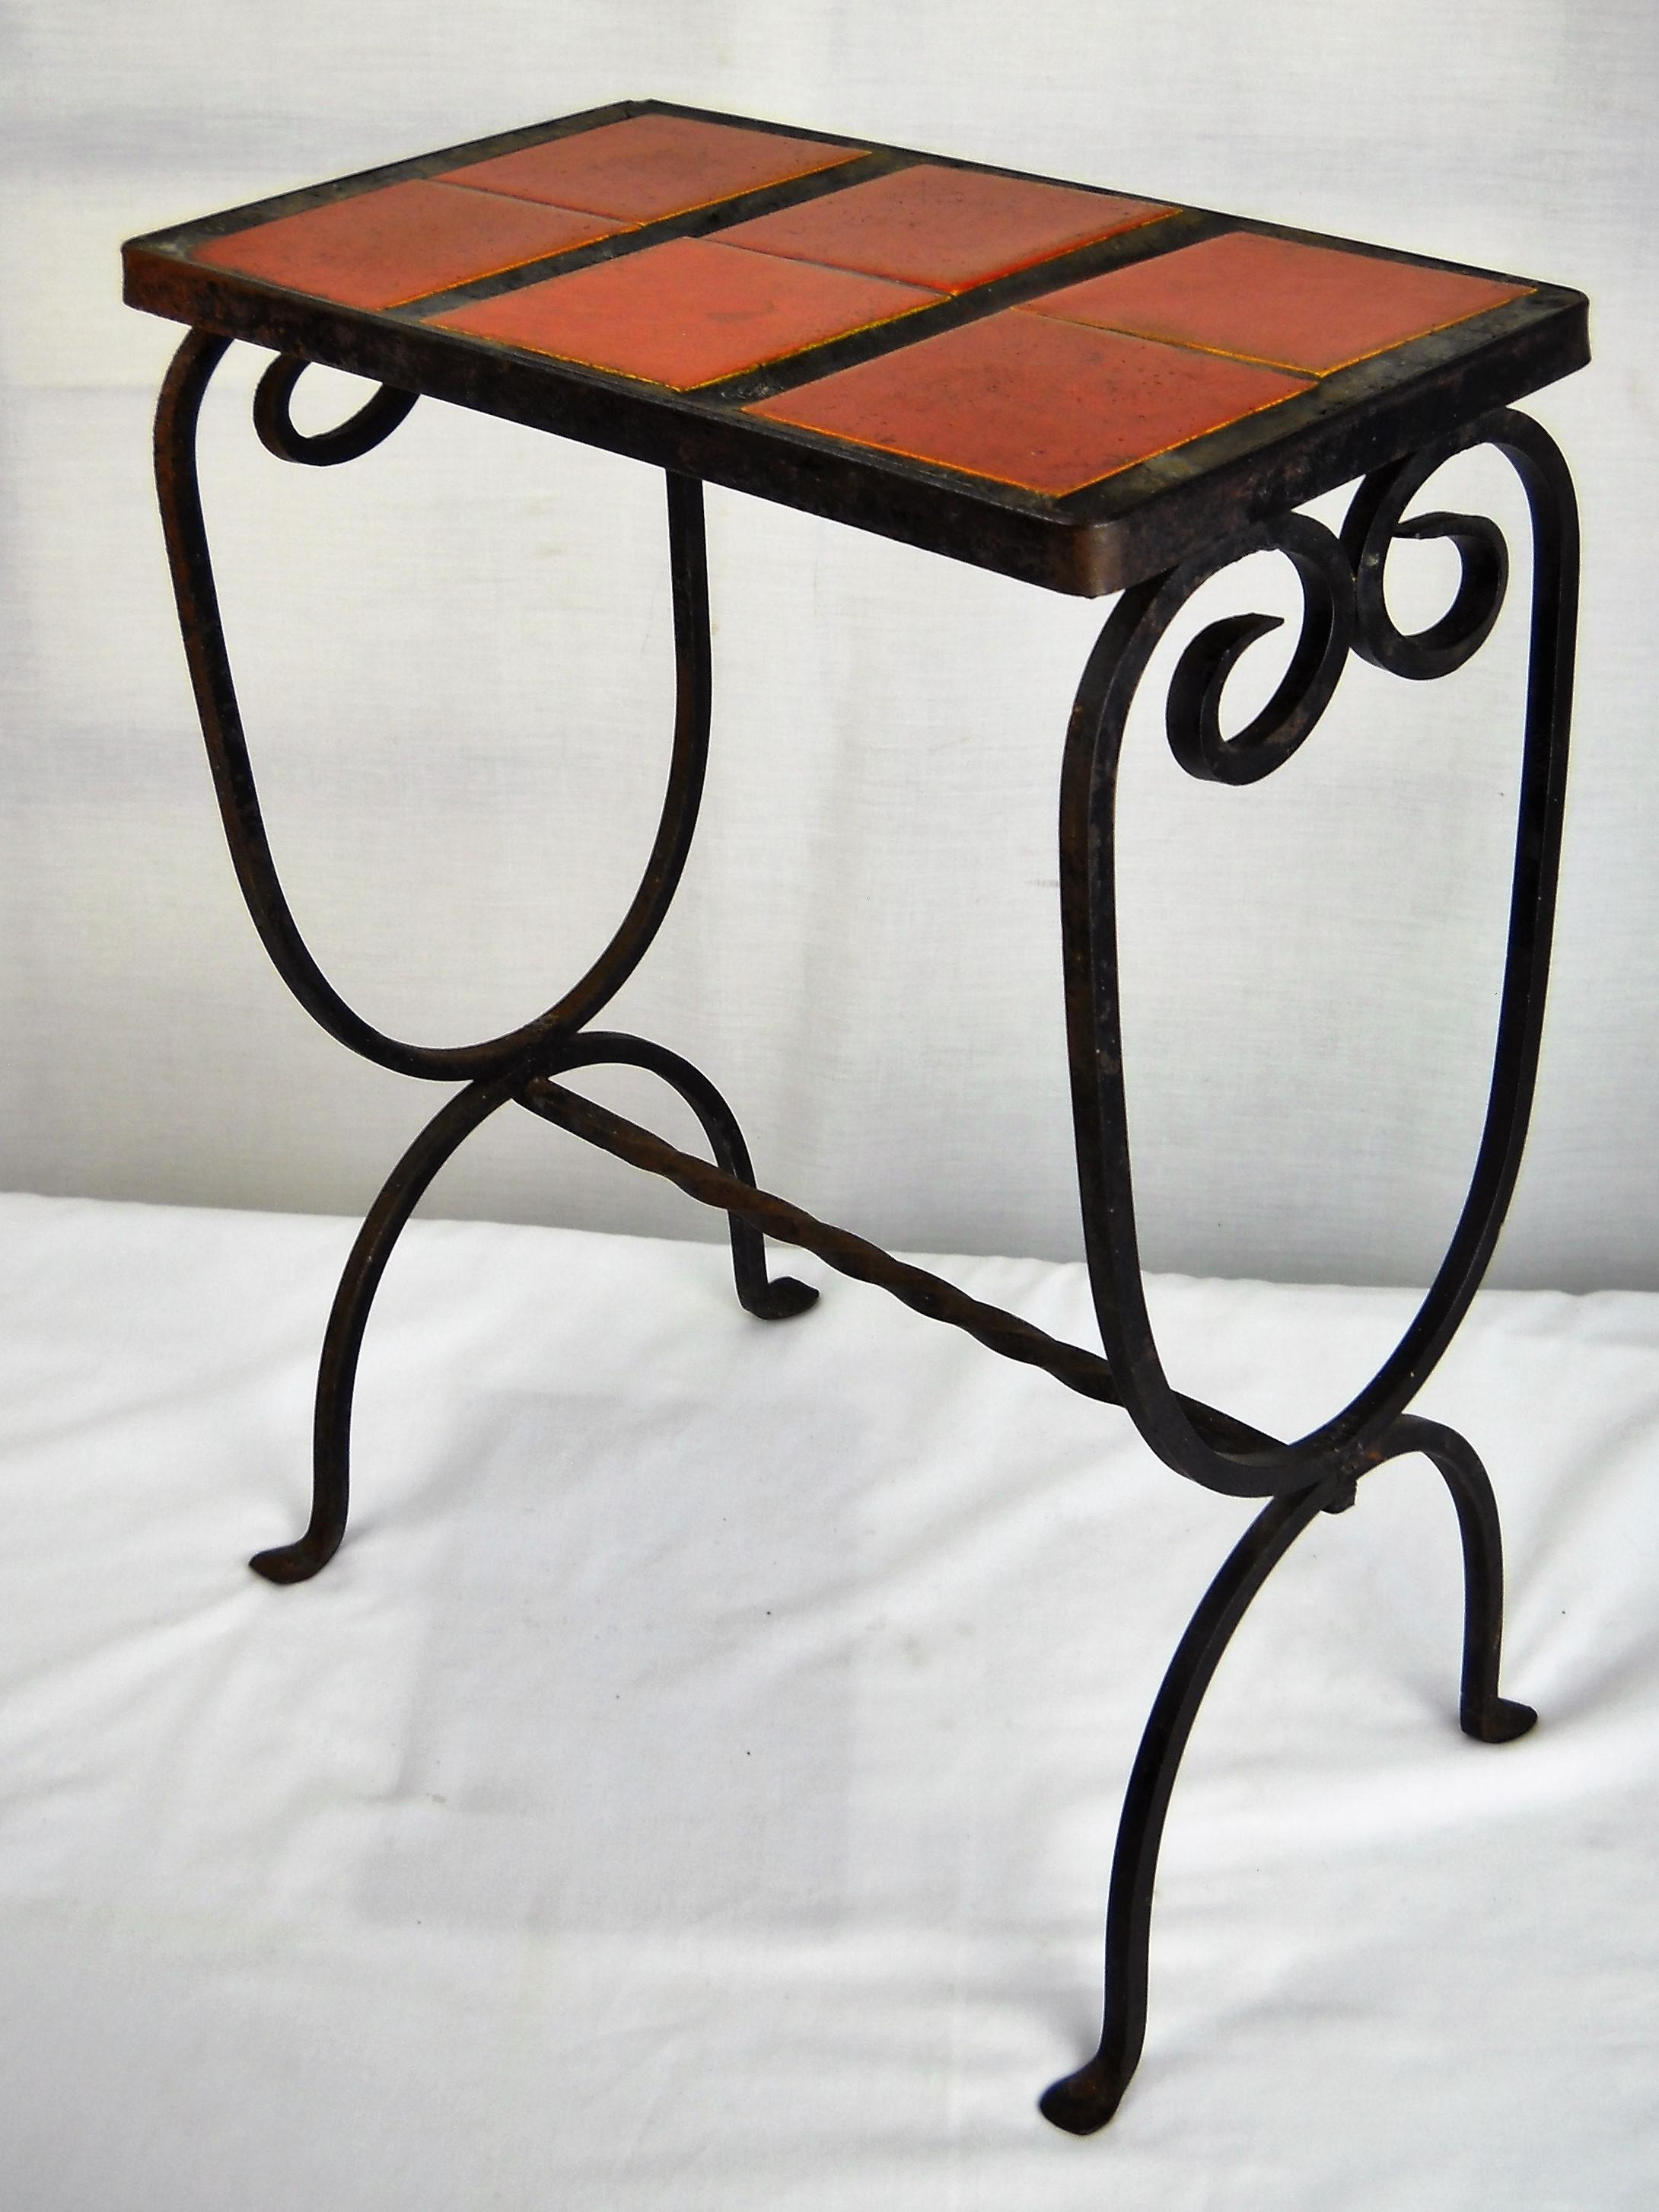 Vintage California Mission Style Hand Crafted Wrought Iron Accent Table  With Vibrant Red Tile Top